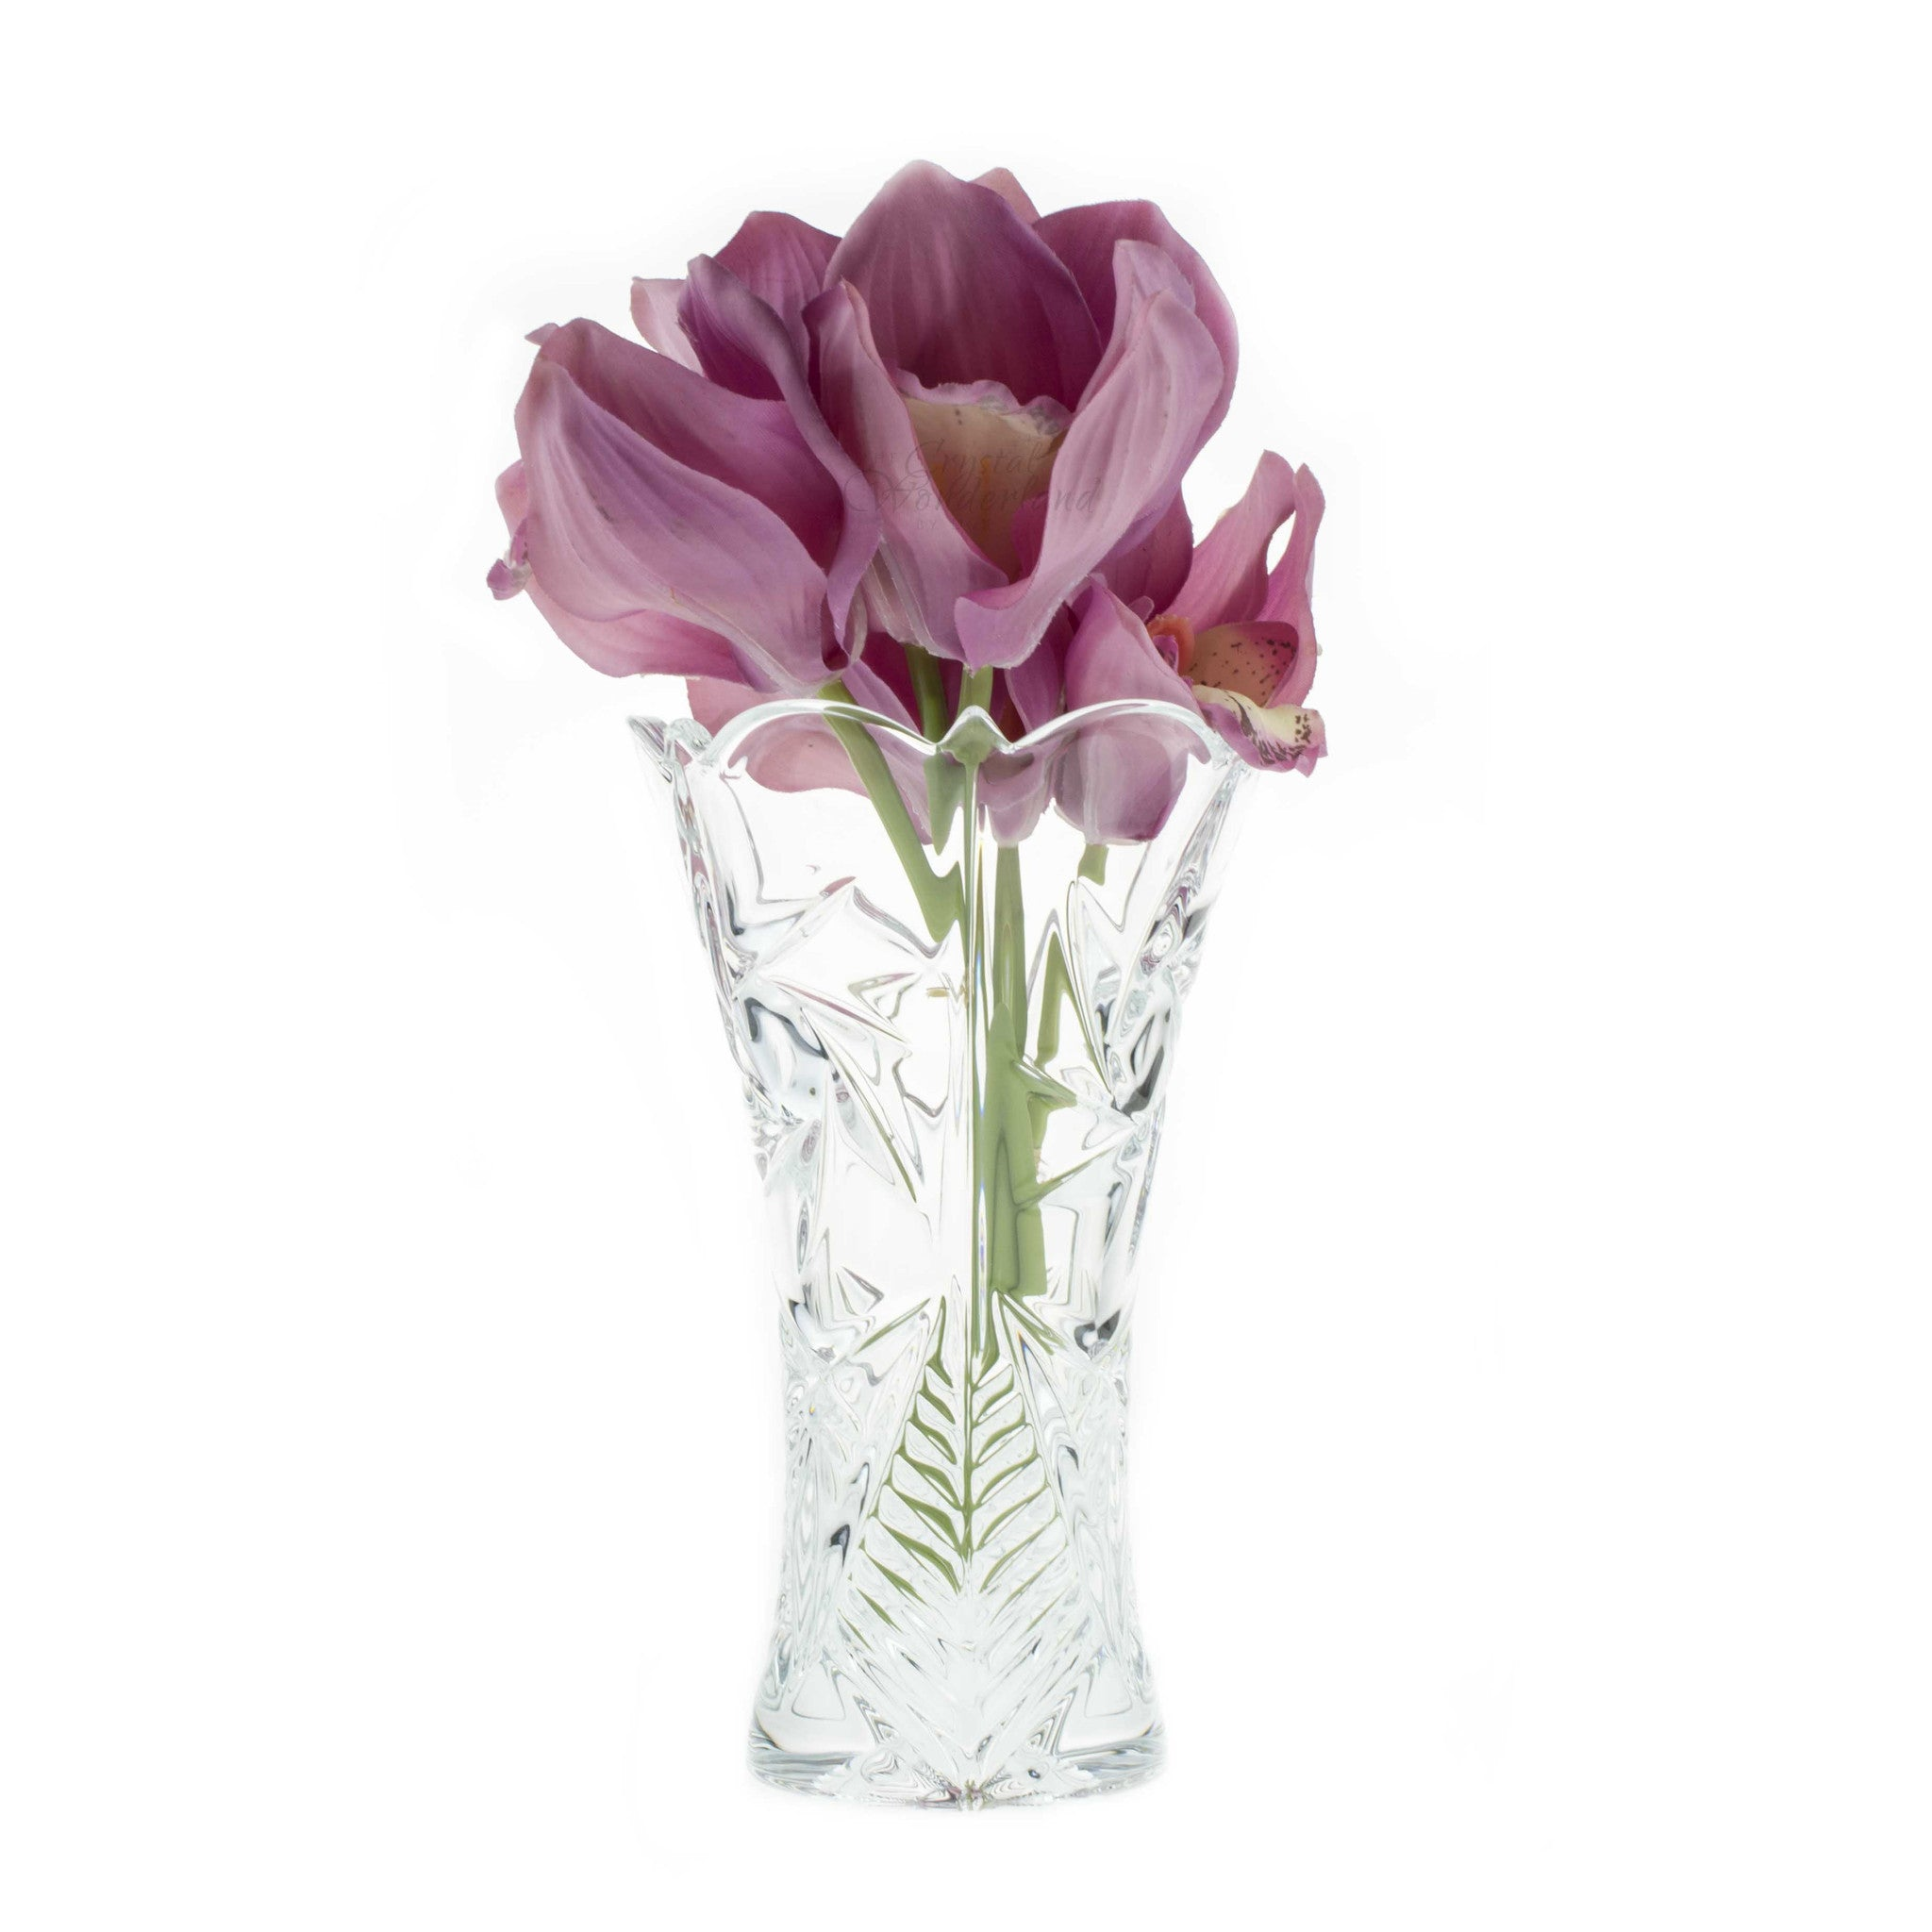 Glass flower vase for your shiny home dulcinea glass vase with flowers the crystal wonderland reviewsmspy